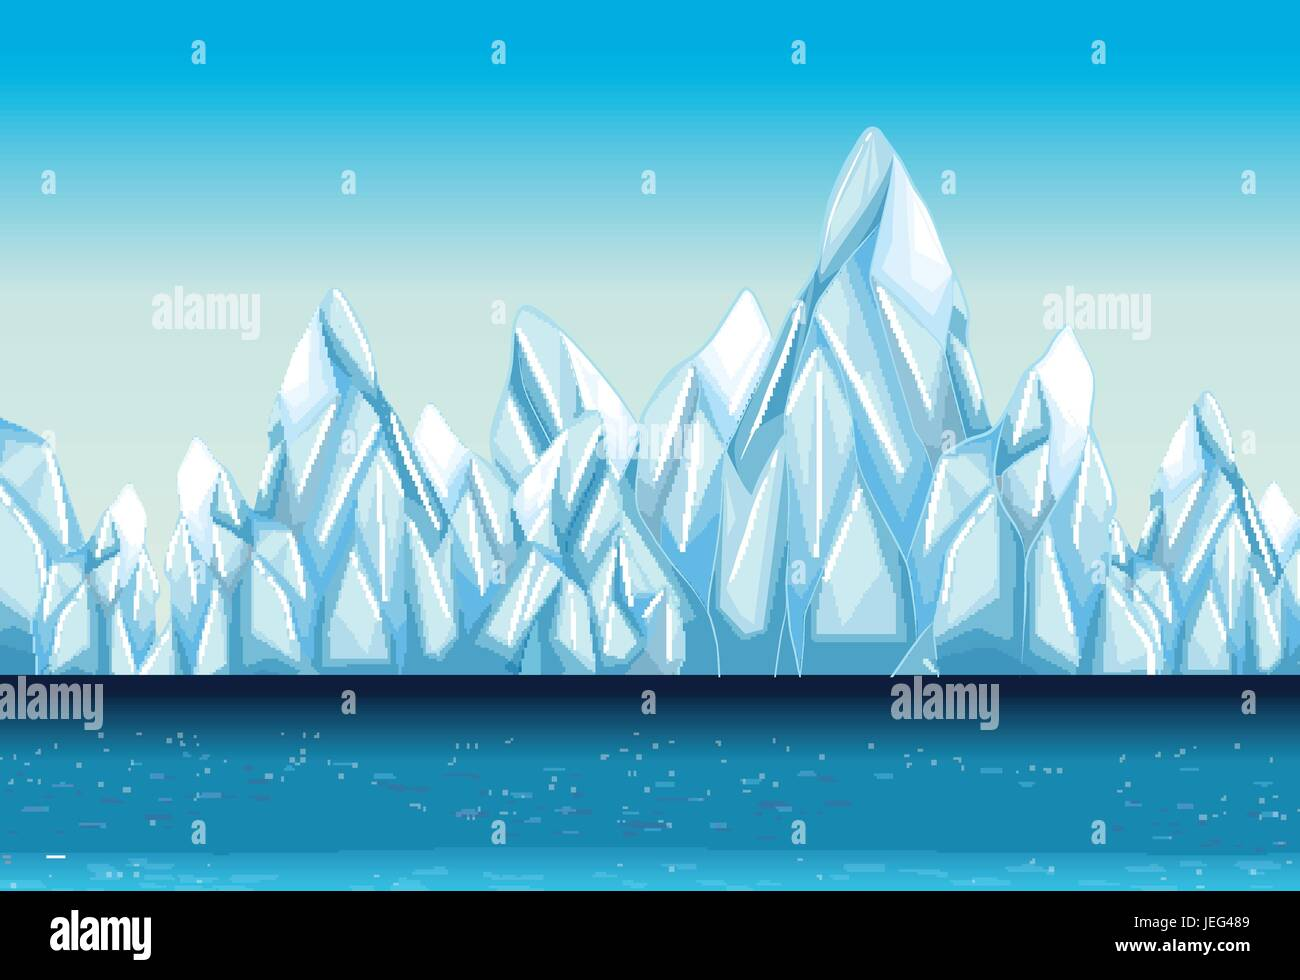 Background with glacier and ocean illustration - Stock Vector